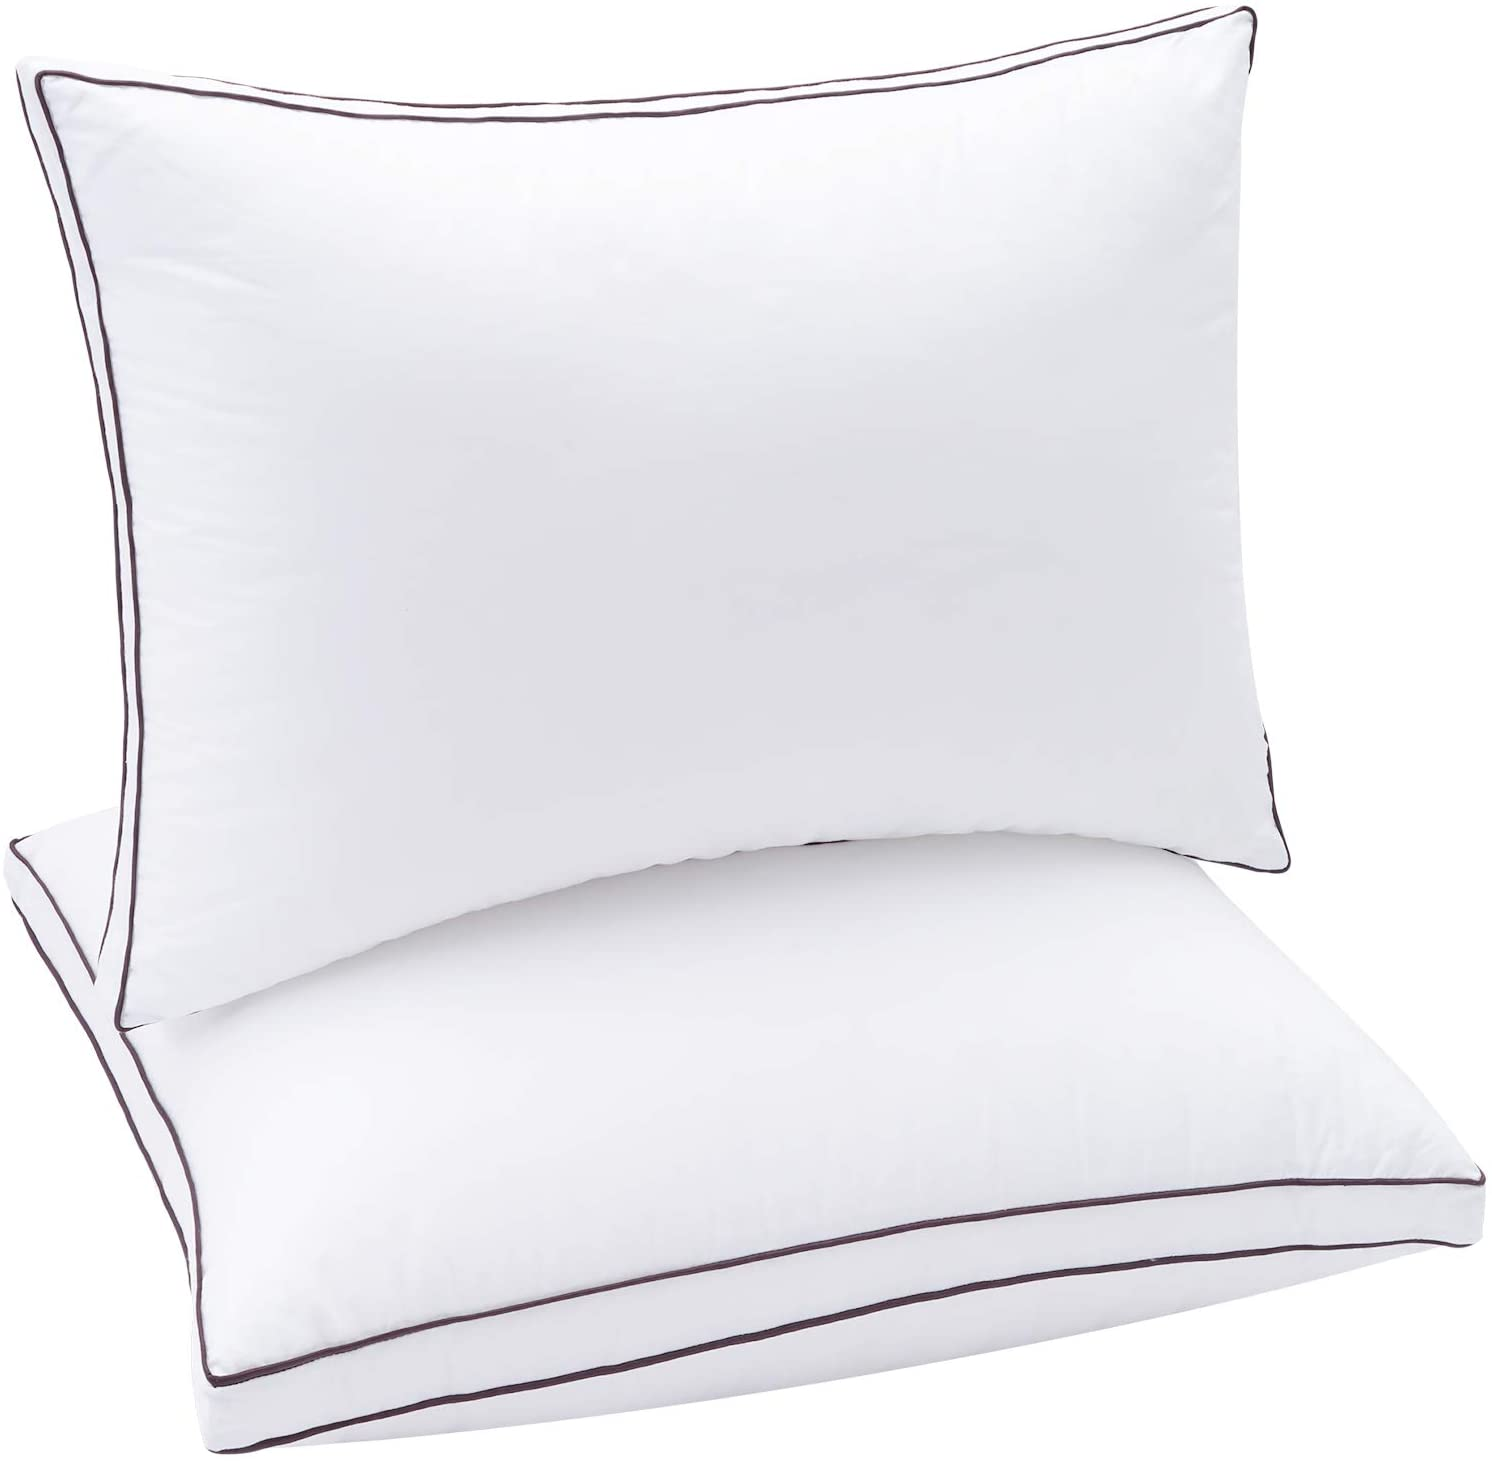 Soamay Bed Pillows for Sleeping 2 Pack, Luxury Down Alternative Pillows with Premium Hypoallergenic Plush Fiber, Good for Side and Back Sleeper-20 x 30 Inches (Queen)